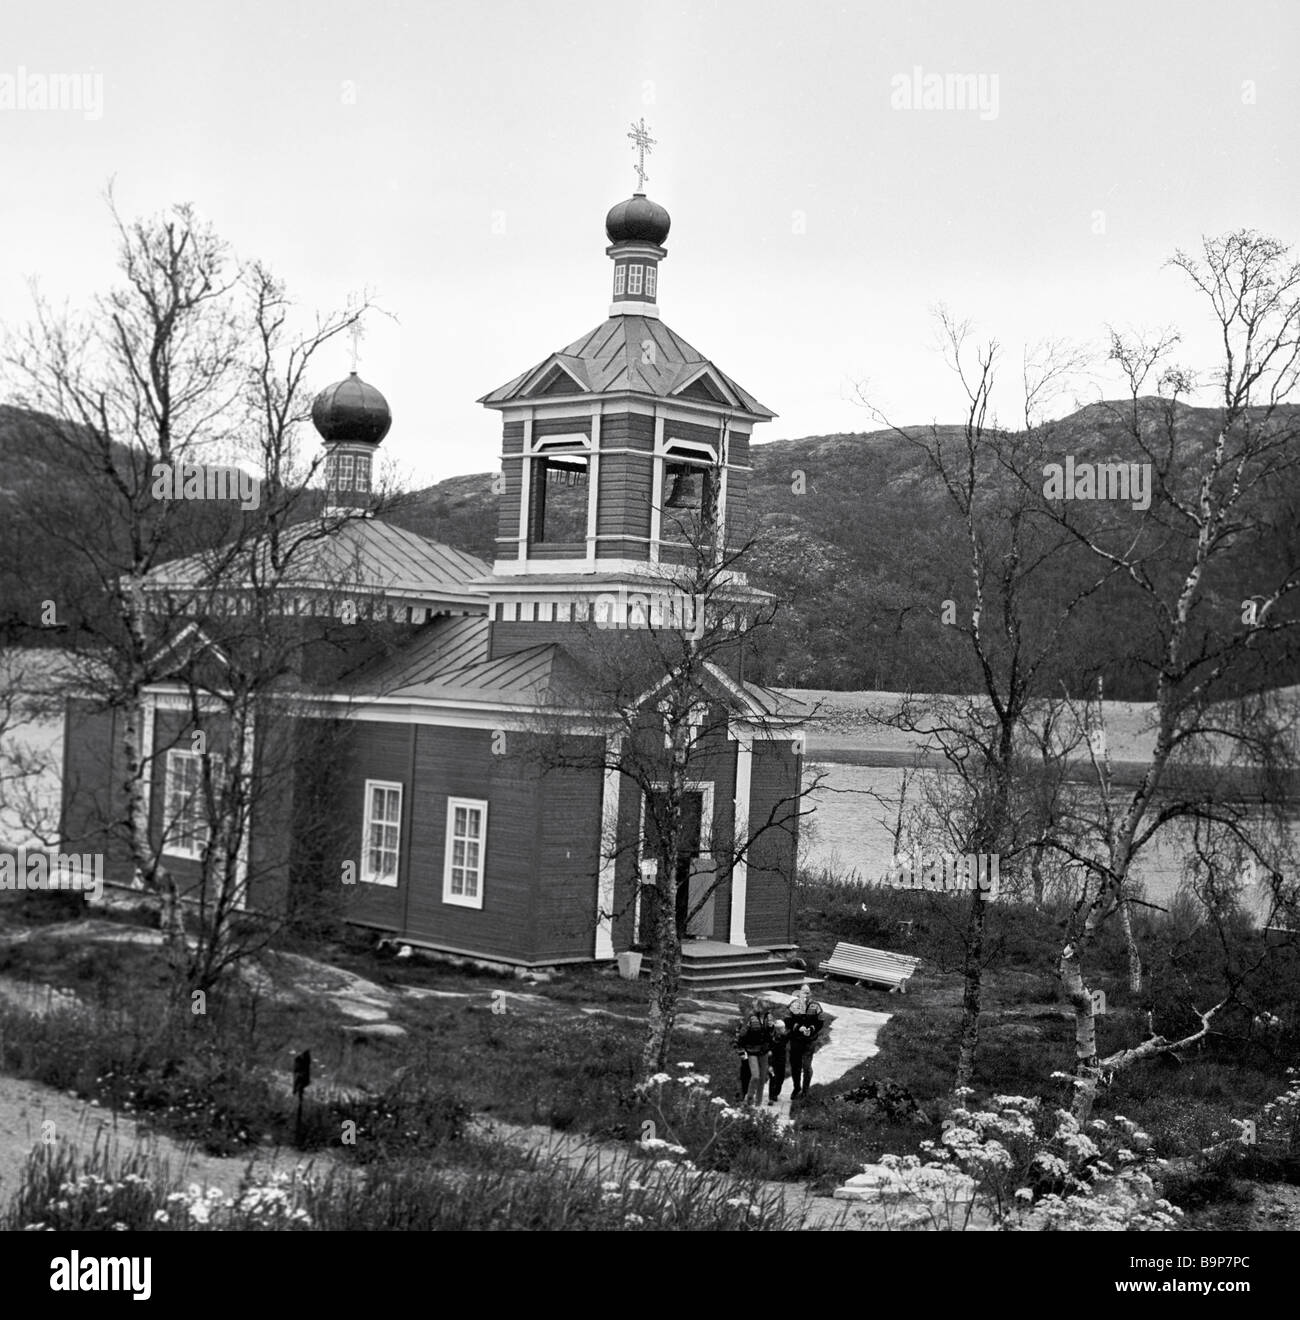 The Boris and Gleb Church in Borisoglebsk - Stock Image